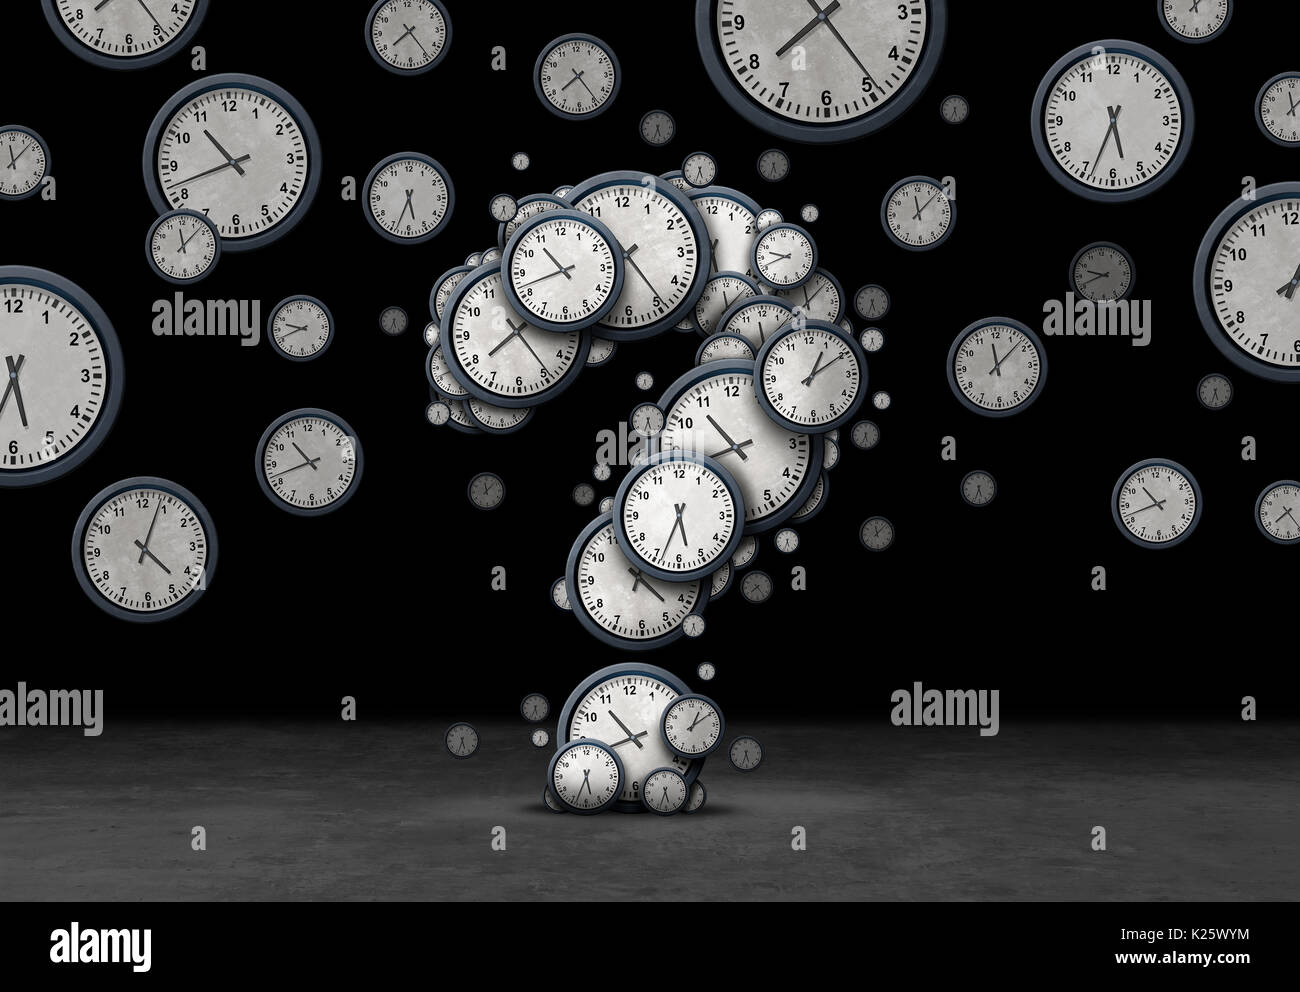 Time questions concept as a group of floating clocks and timepieces shaped as a question mark as a metaphor for deadline or business. - Stock Image